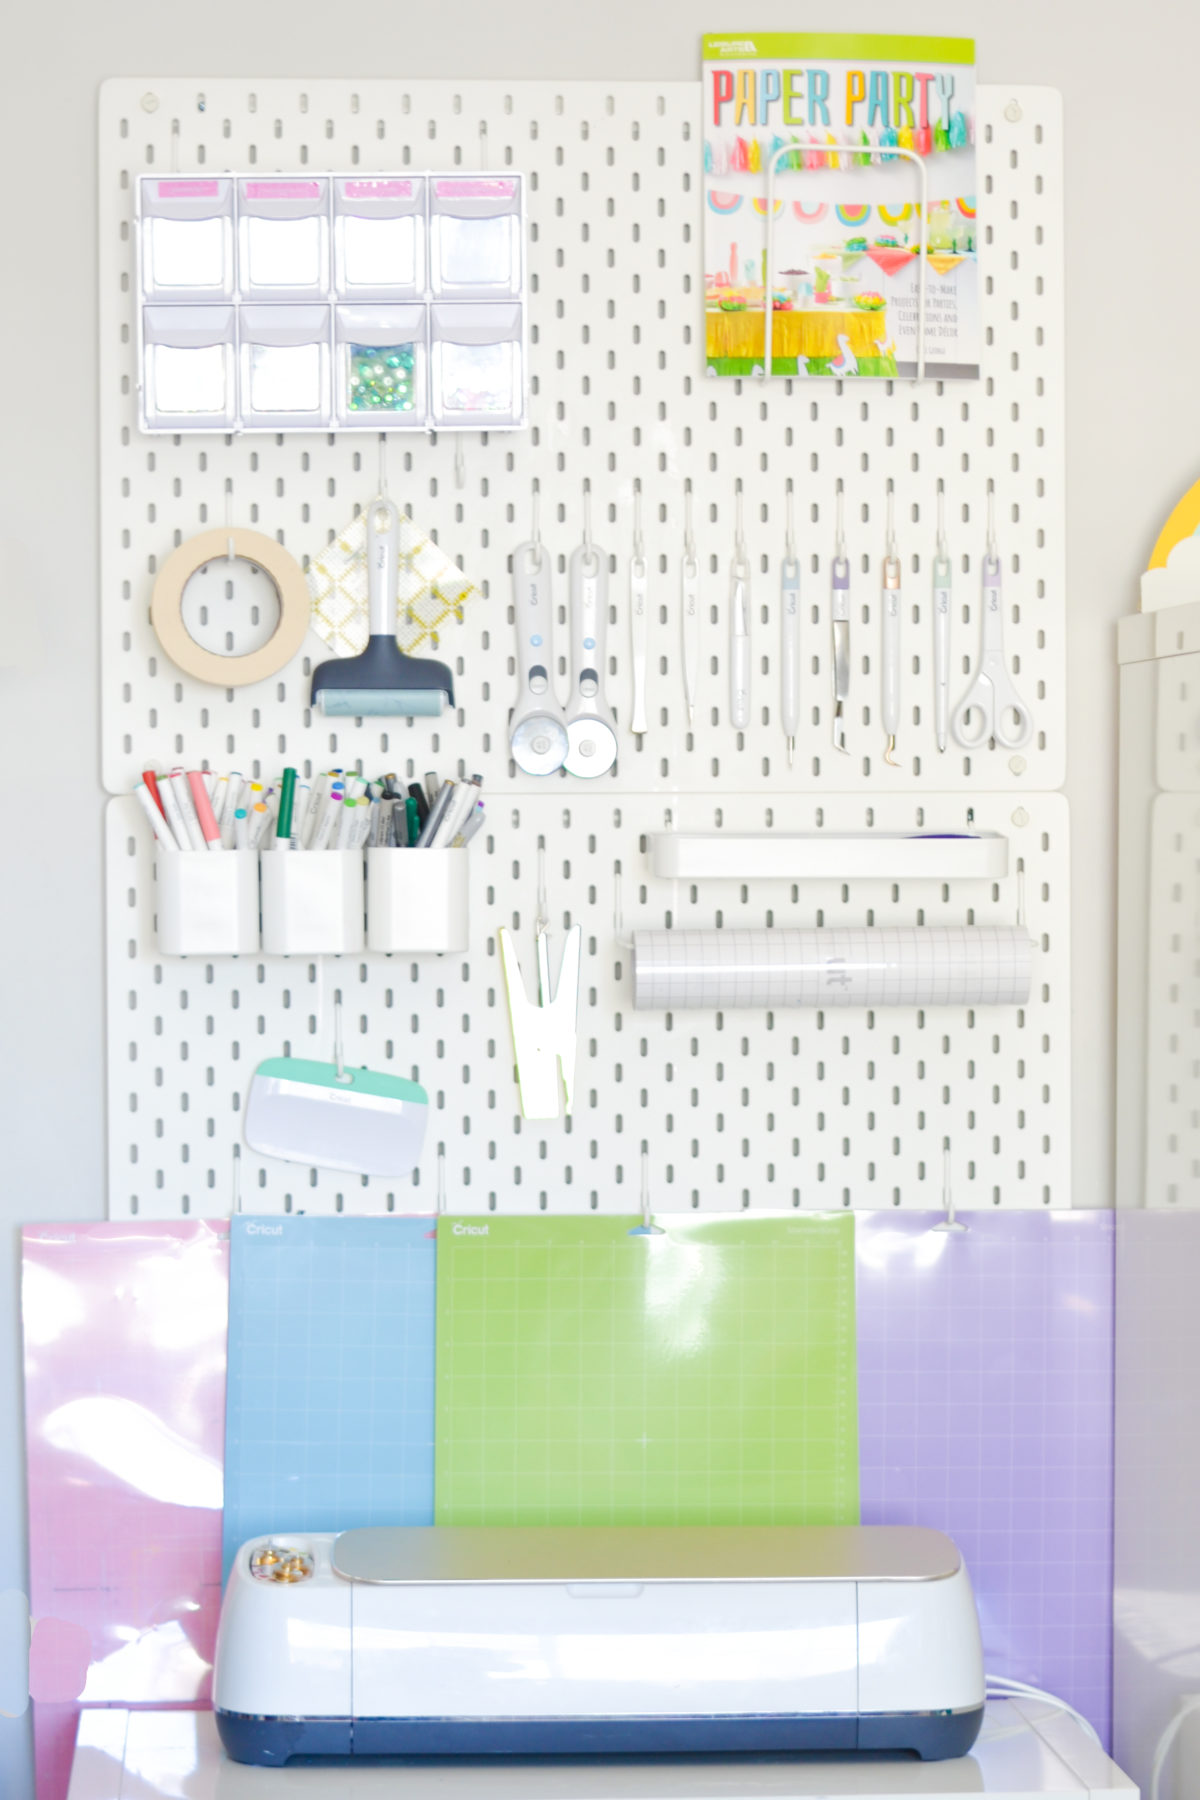 Cricut Accessory Storage